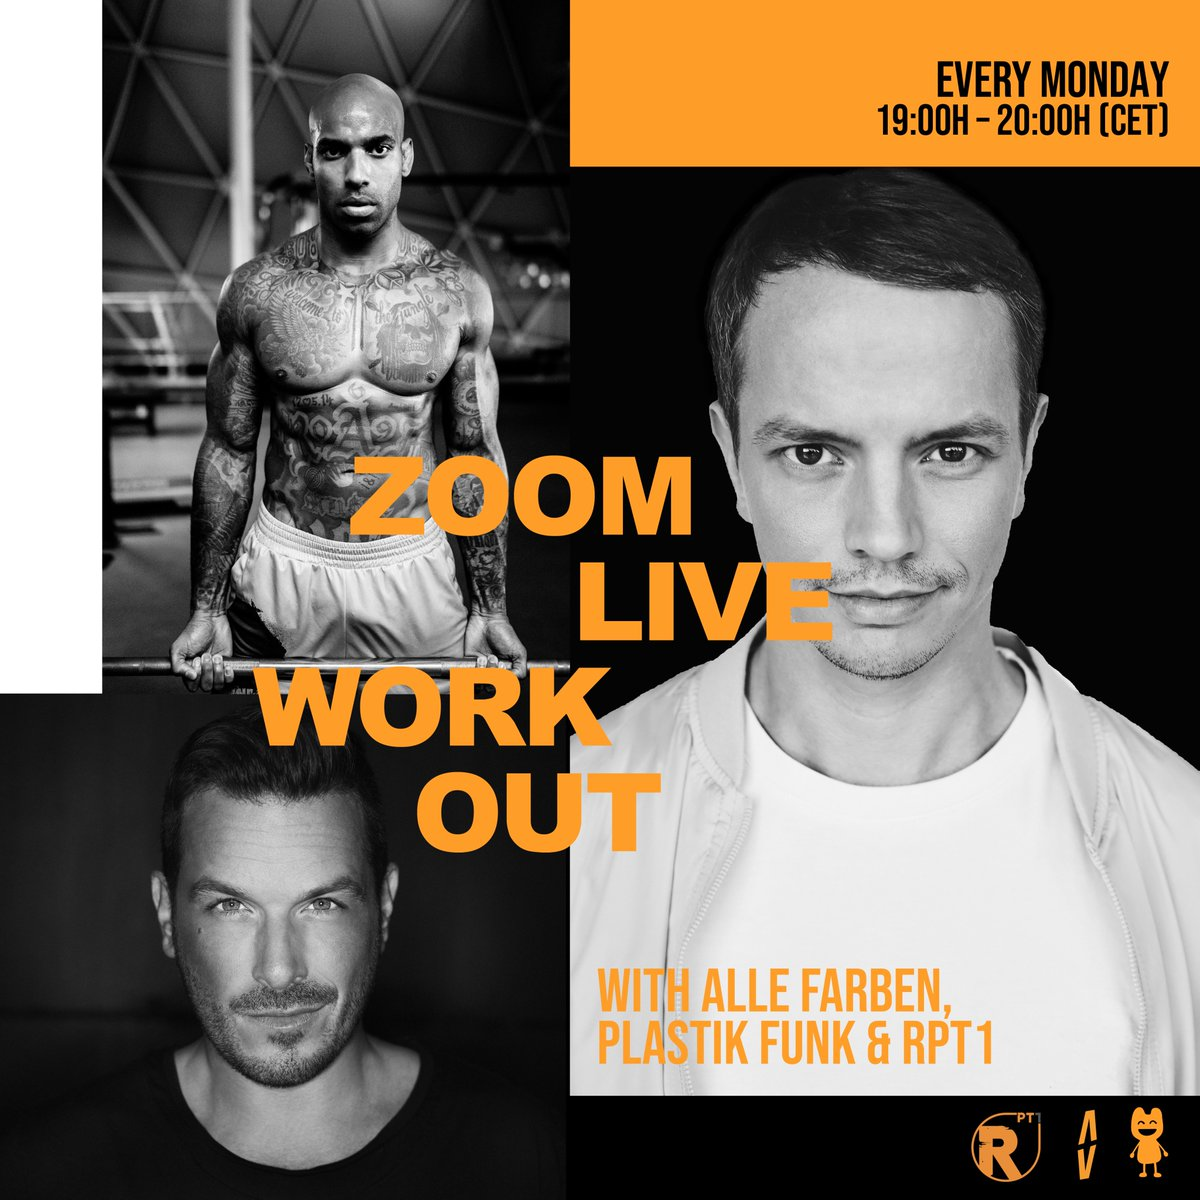 Get your workout in together with myself, Plastik Funk and our personal trainer RPT1 💦 Join our Zoom Workout at 7pm 💪🏻